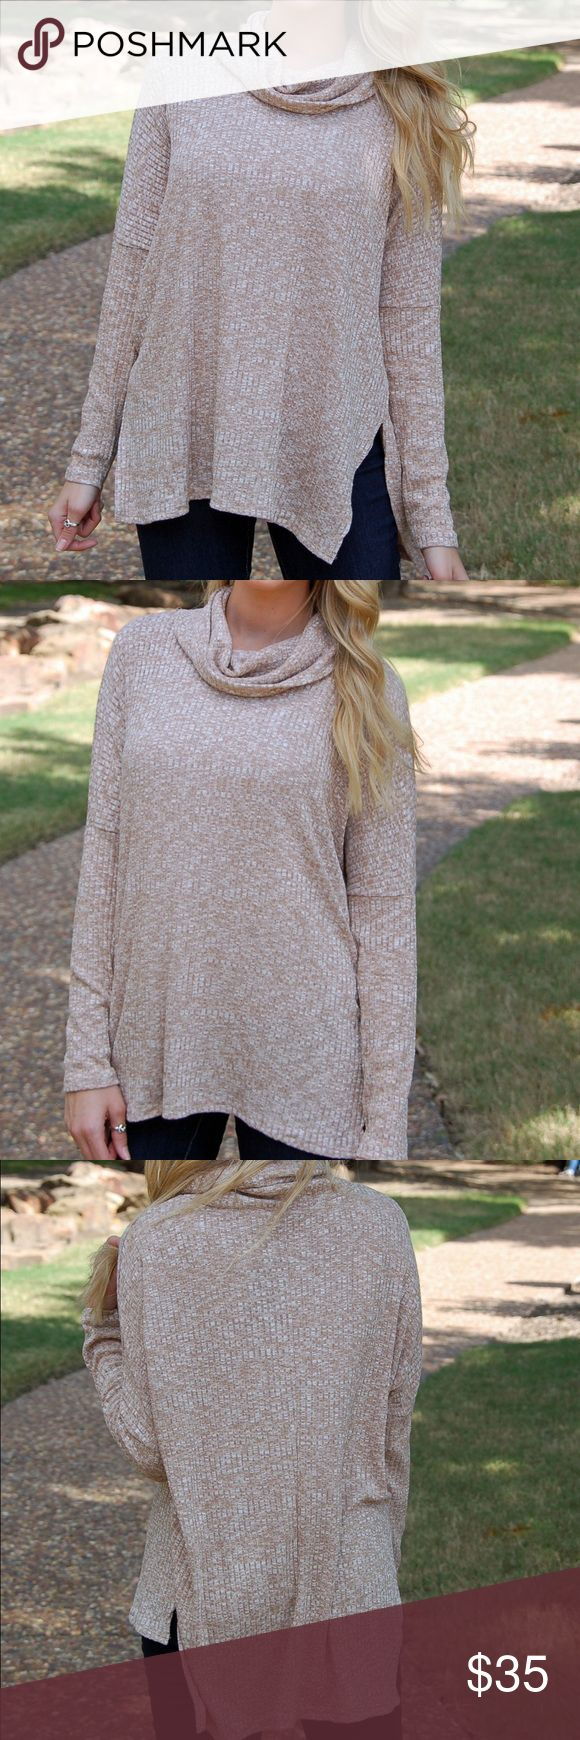 Super Comfy Beige White Cowl Neck Top This amazingly comfortable and lightweight slouchy top pairs perfectly with leggings and boots! Runs true to size for an oversized fit and model is wearing size small! Also available in navy in my closet! Paperback Boutique Tops